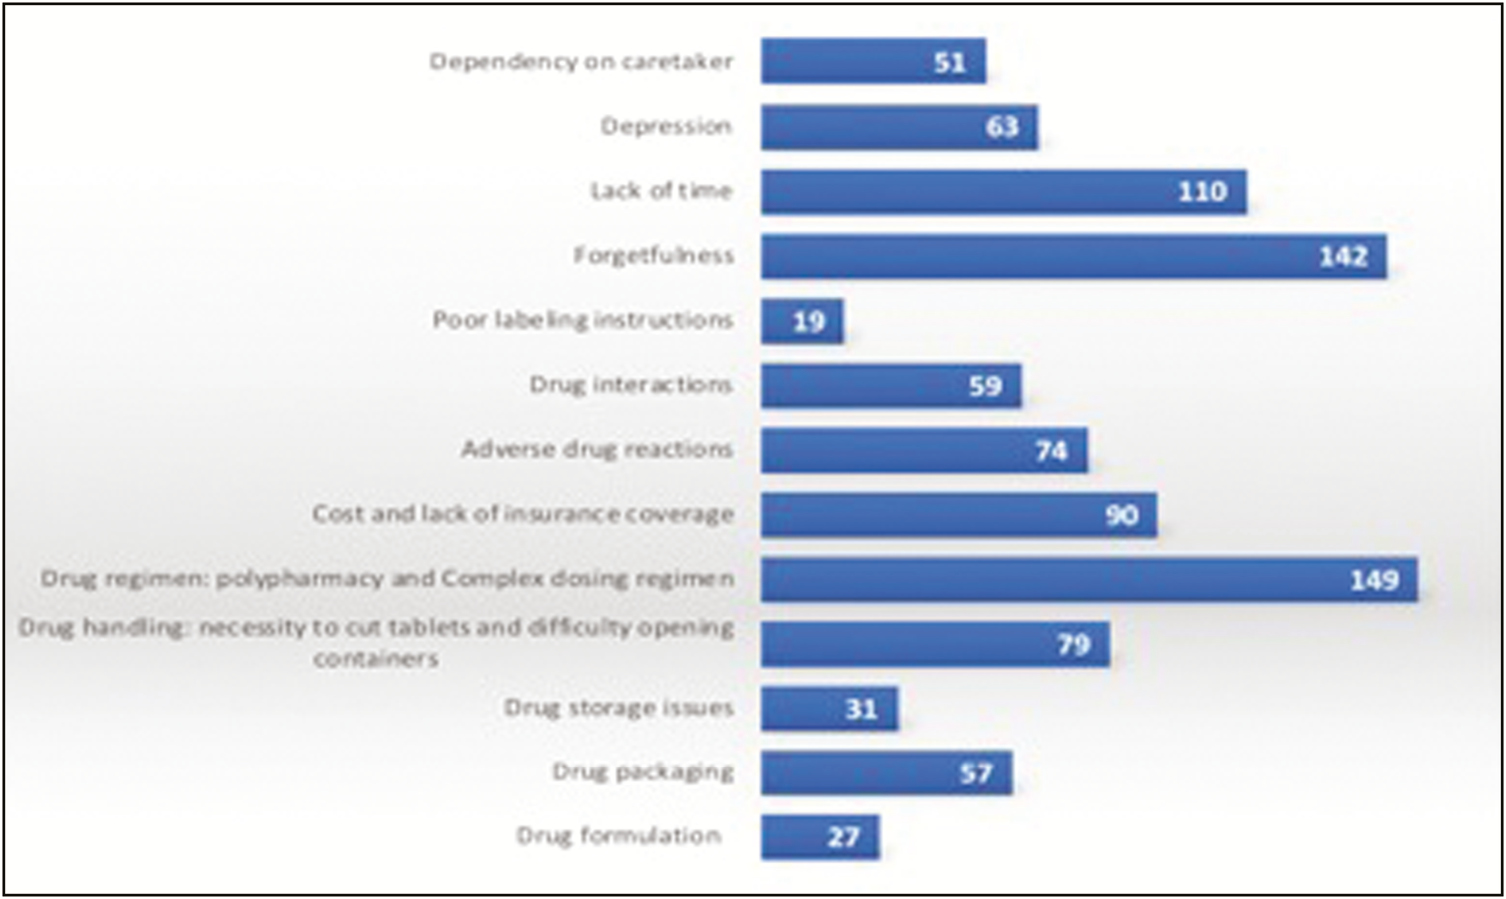 Figure 2: Factors that may affect medication adherence